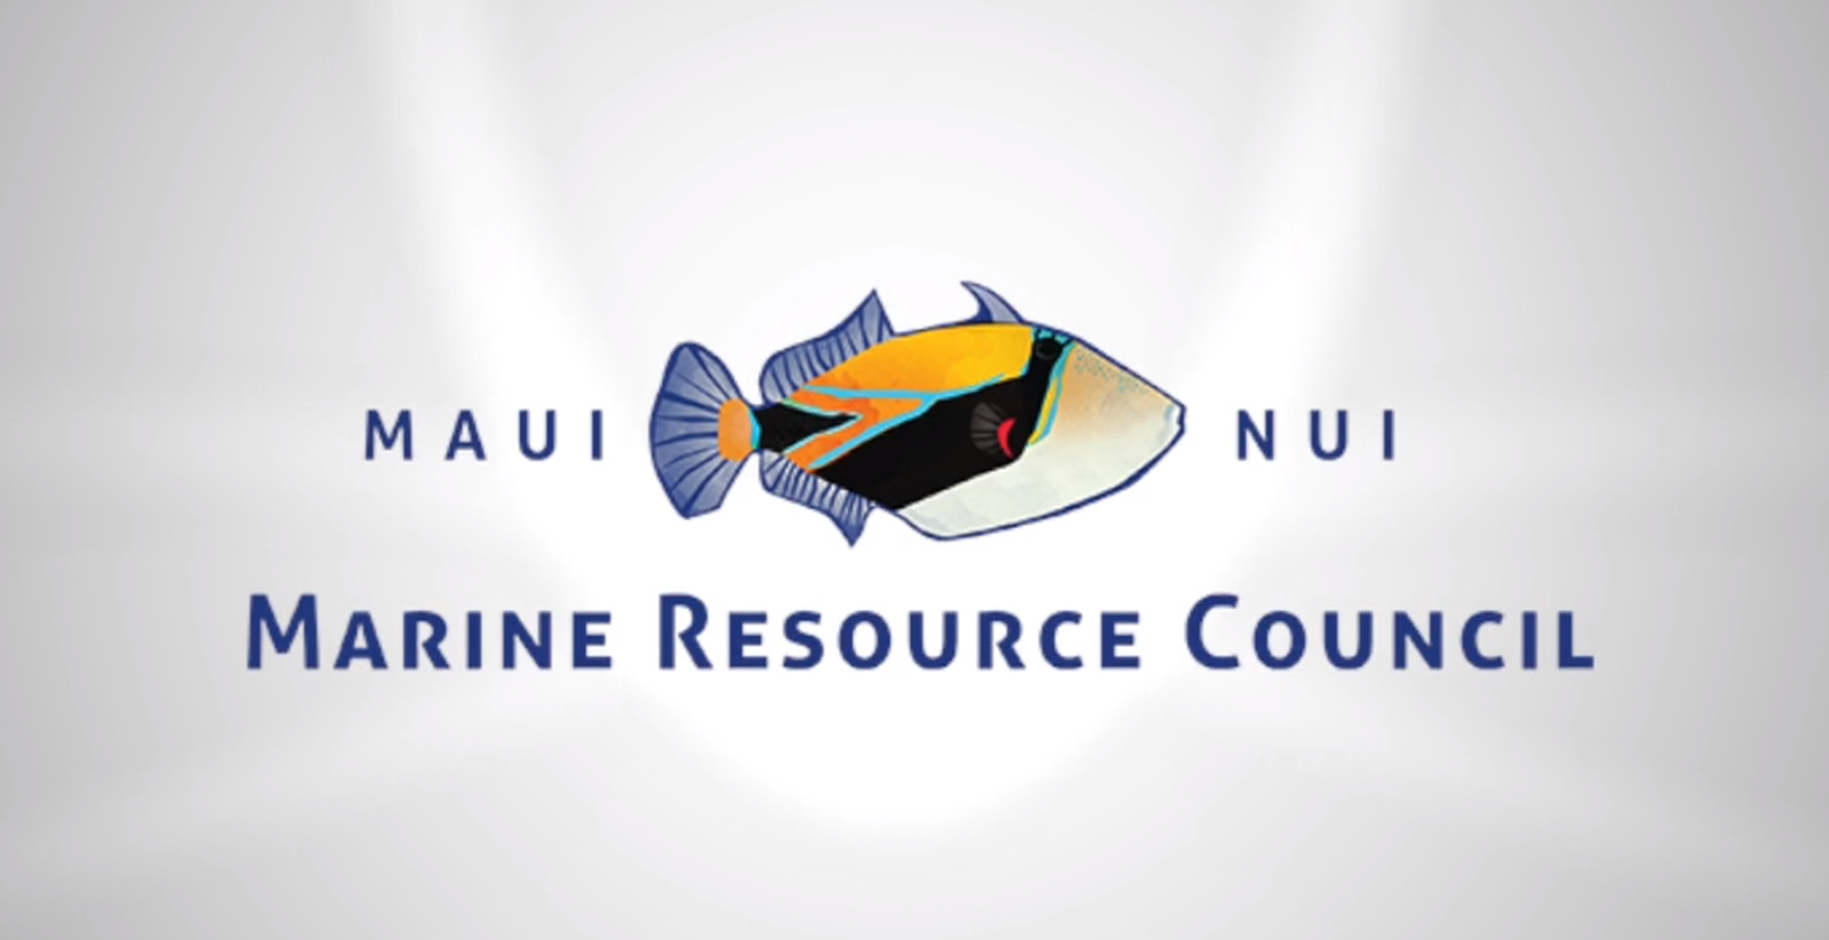 Maui-Nui-Marine-Resource-Council-banner.png